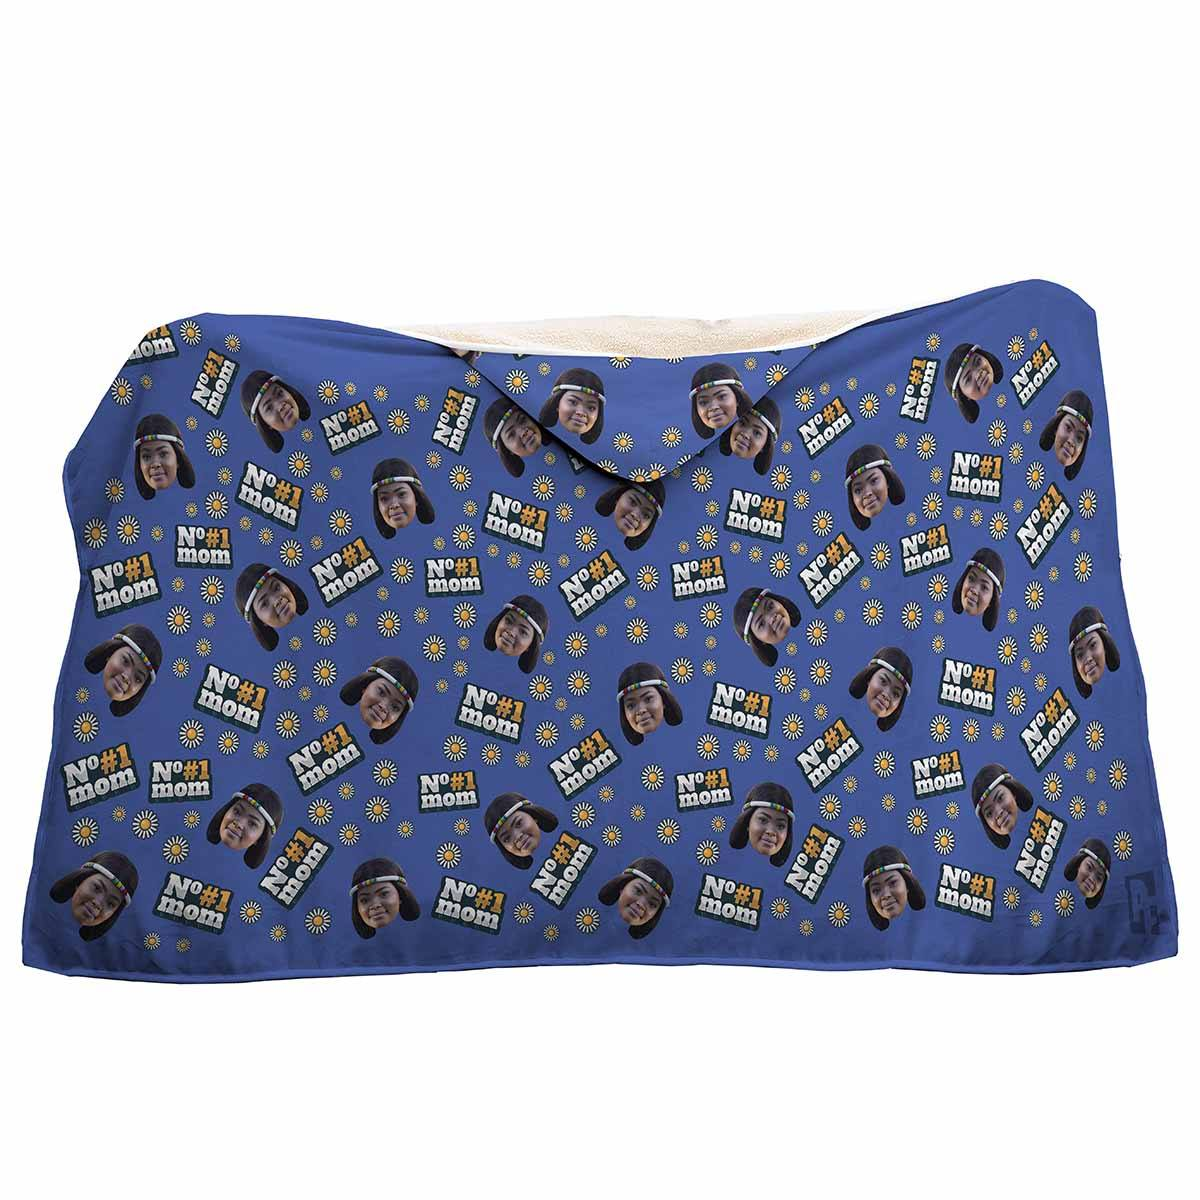 darkblue #1 Mom hooded blanket personalized with photo of face printed on it